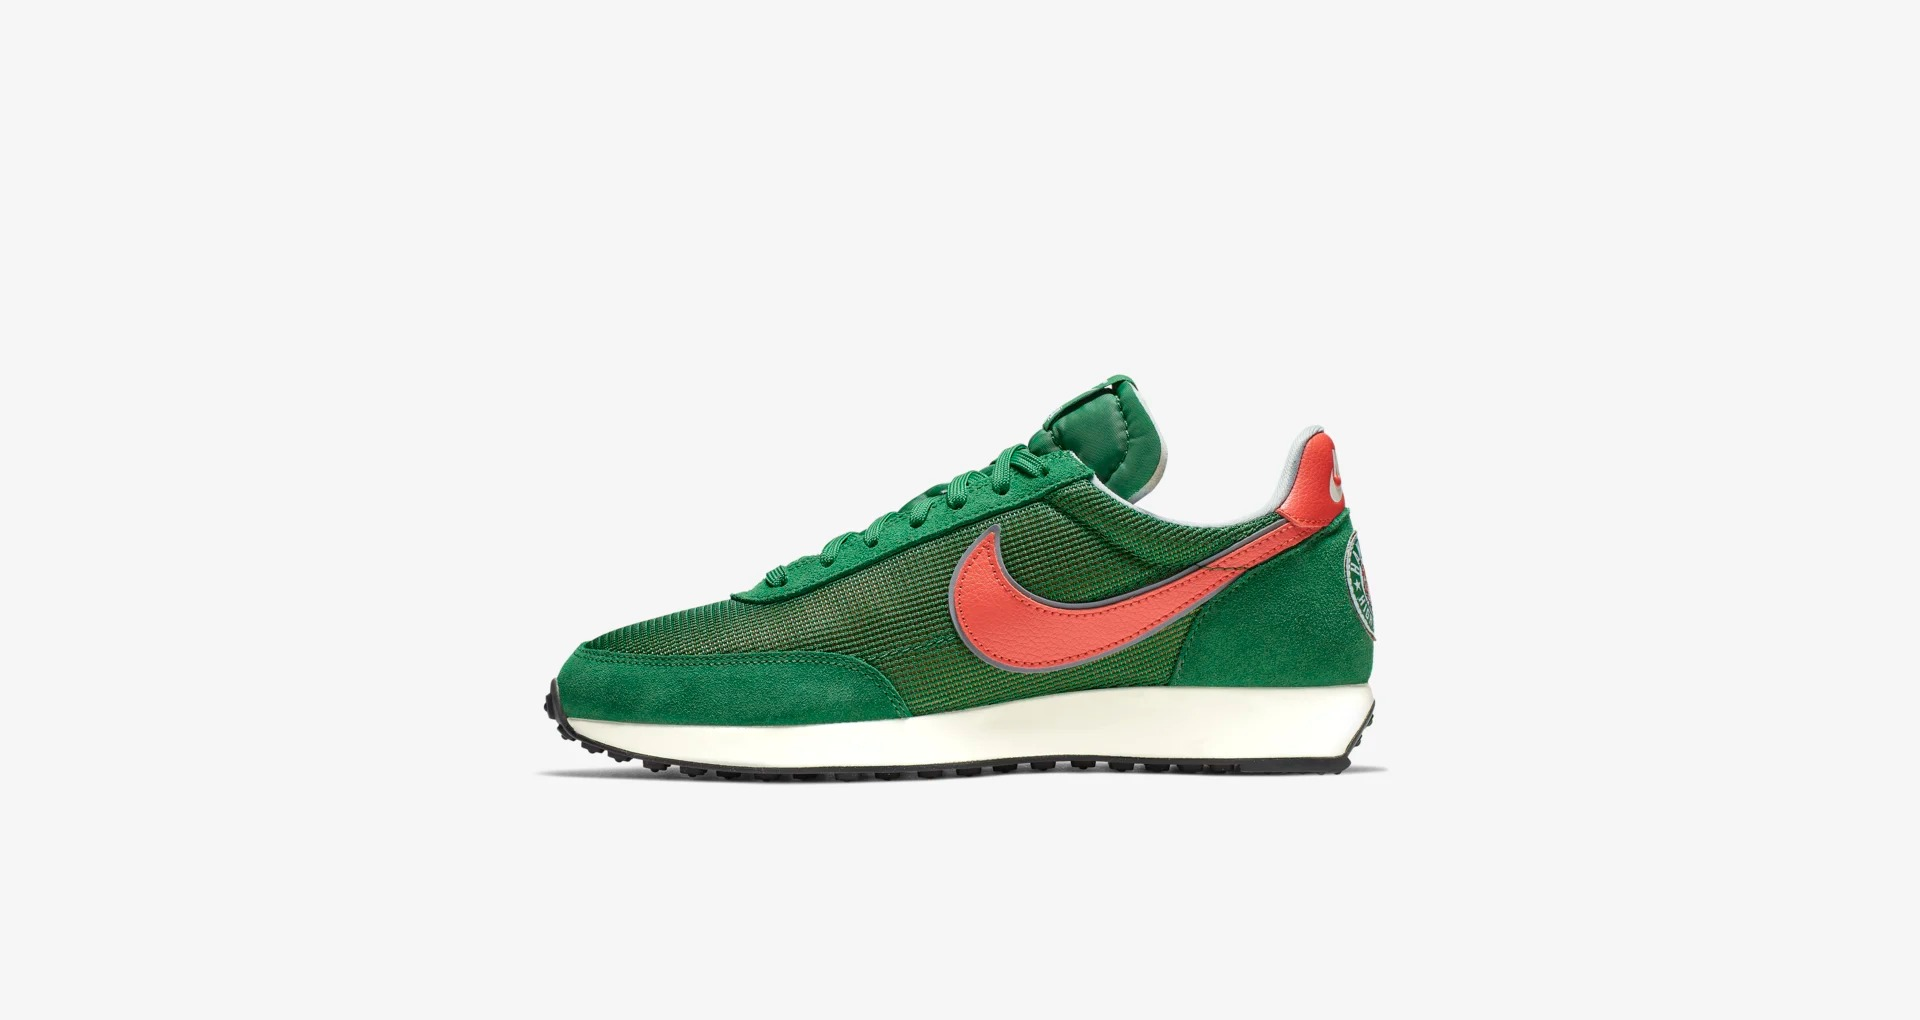 CJ6108 300 Stranger Things x Nike Air Tailwind 1